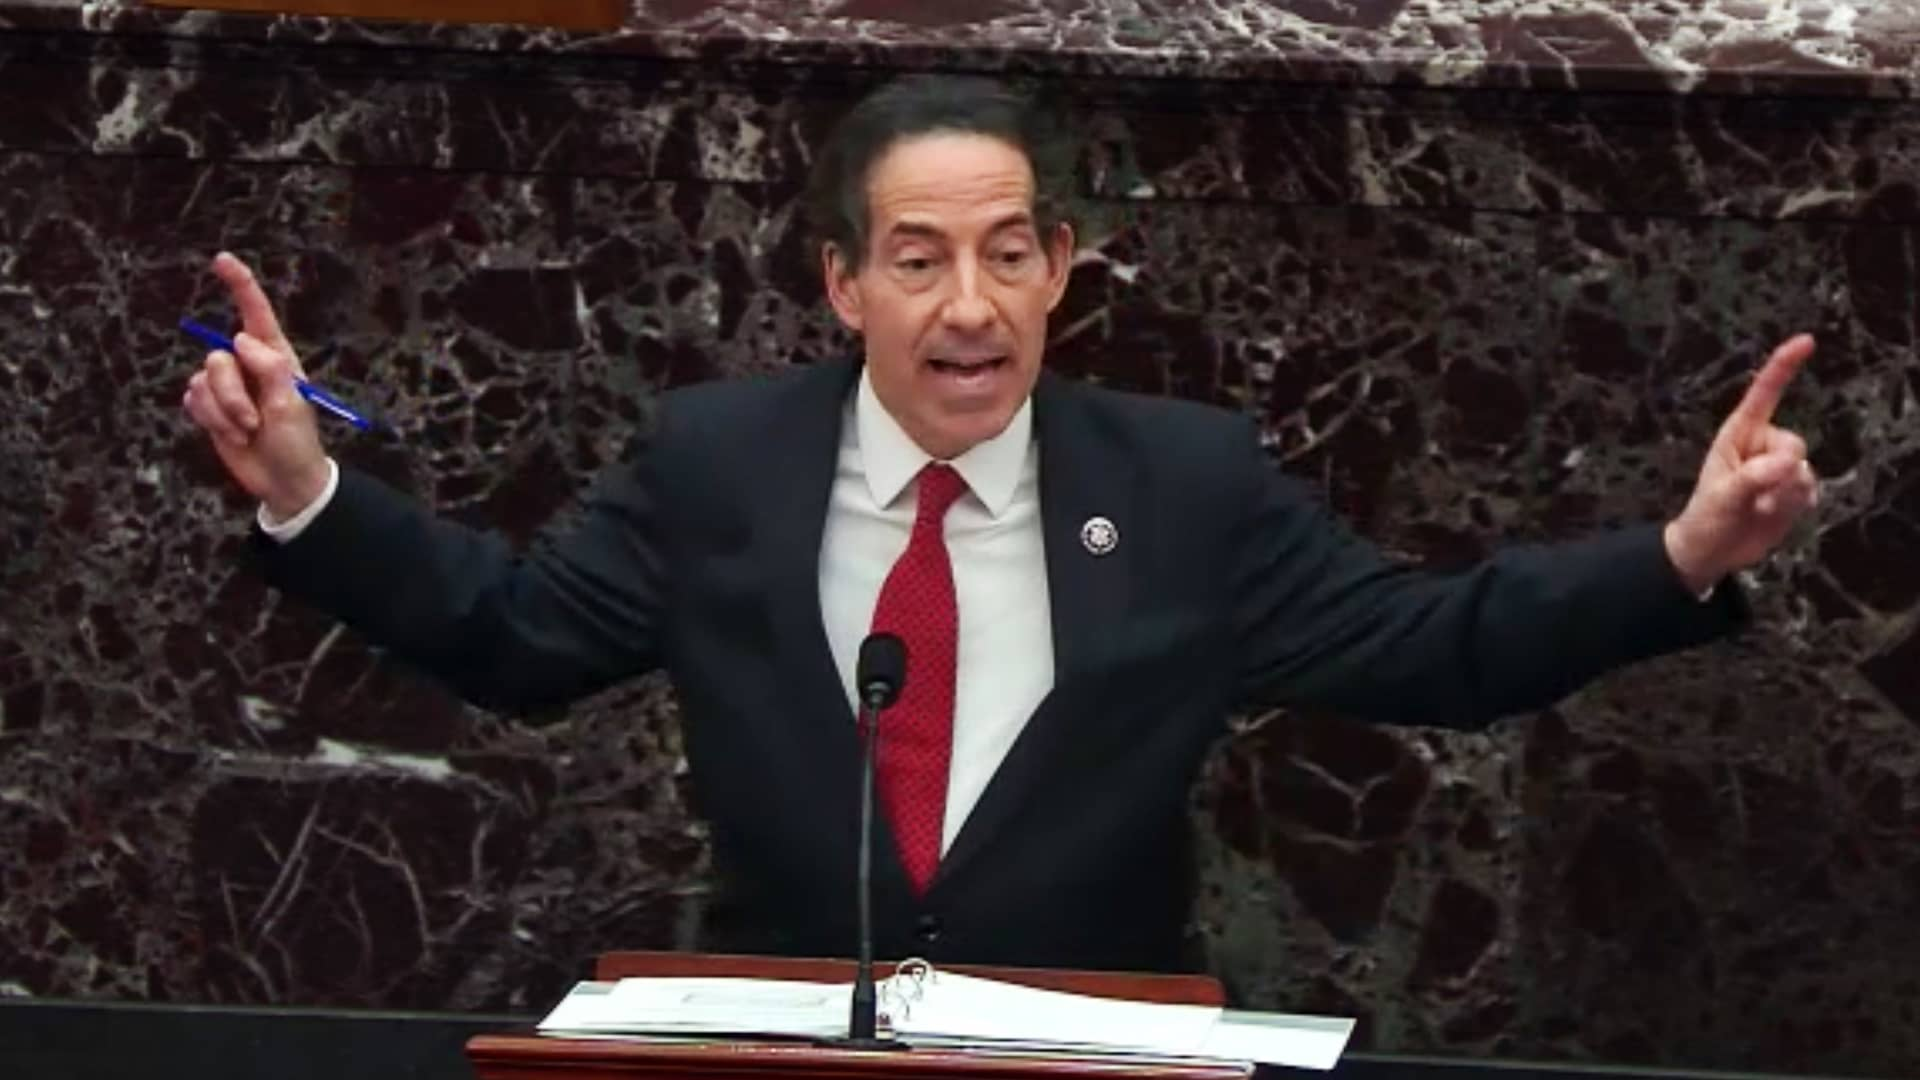 Representative Jamie Raskin, a Democrat from Maryland, speaks in the Senate Chamber in a video screenshot in Washington, D.C., U.S., on Tuesday, Feb. 9, 2021.